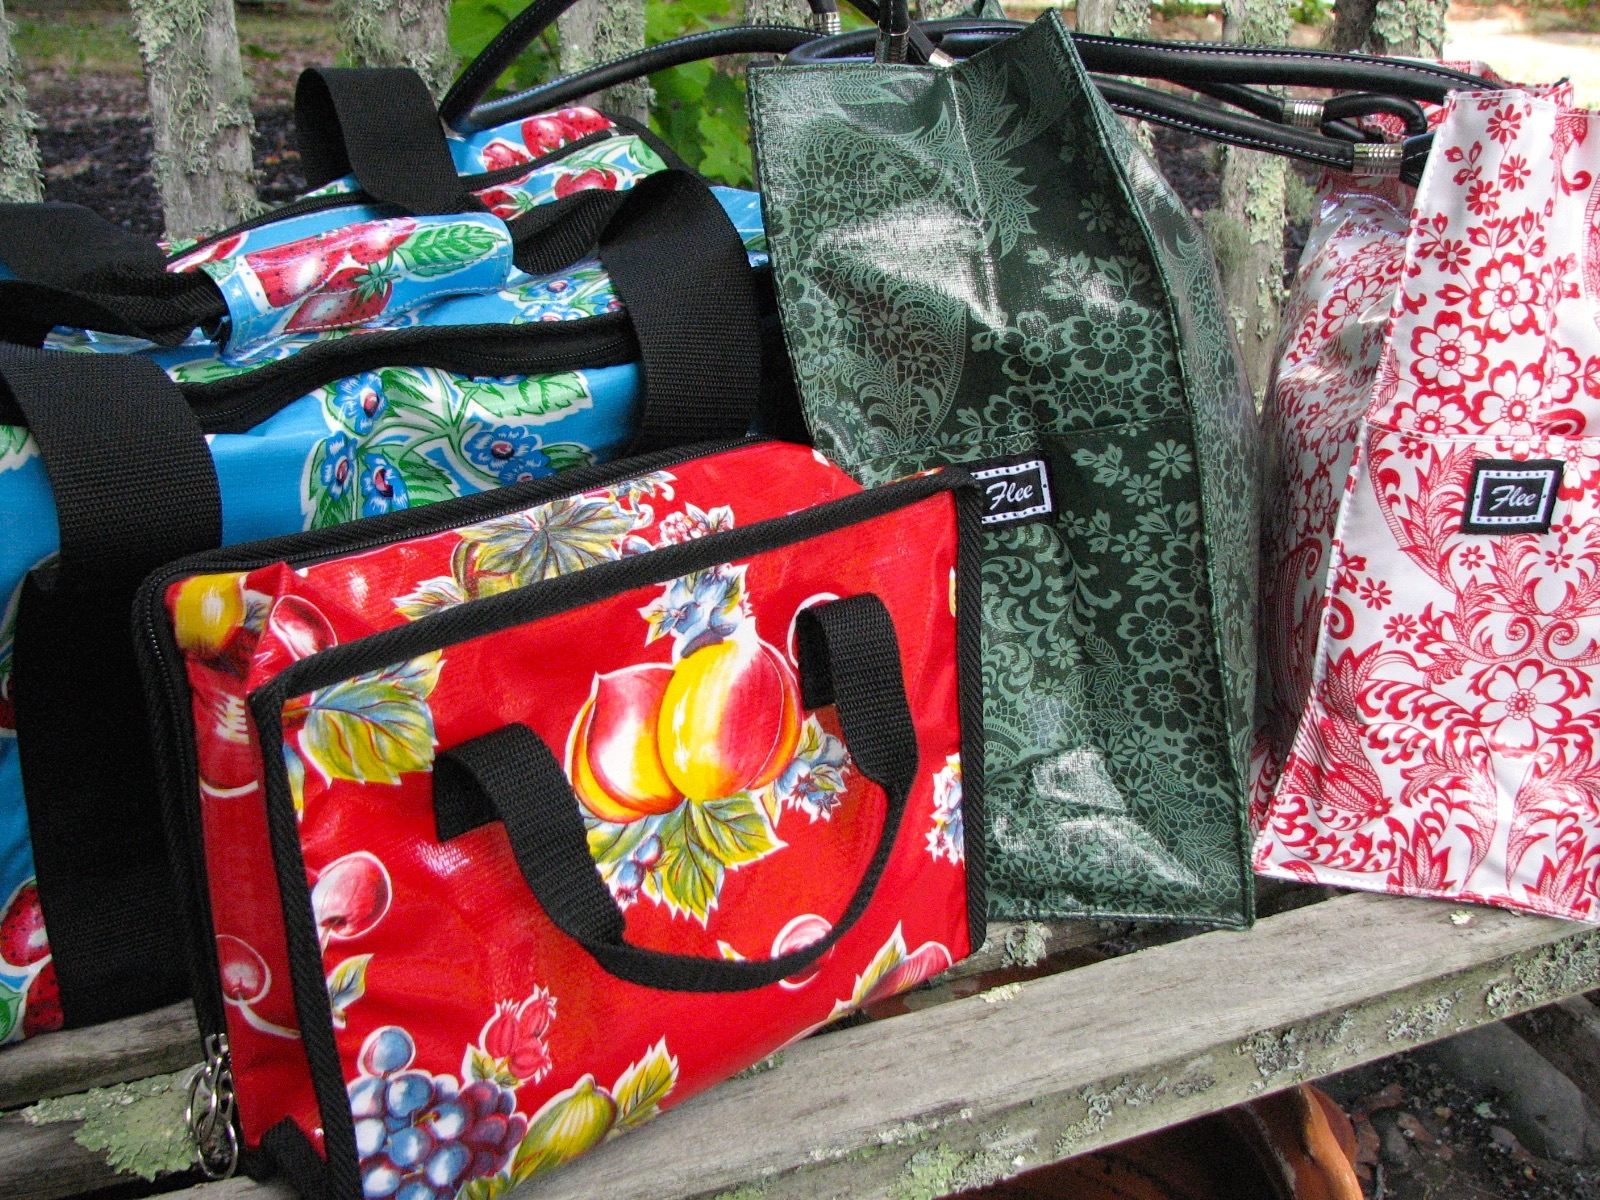 flee bags in heavy oilcloth and cheery patterns.